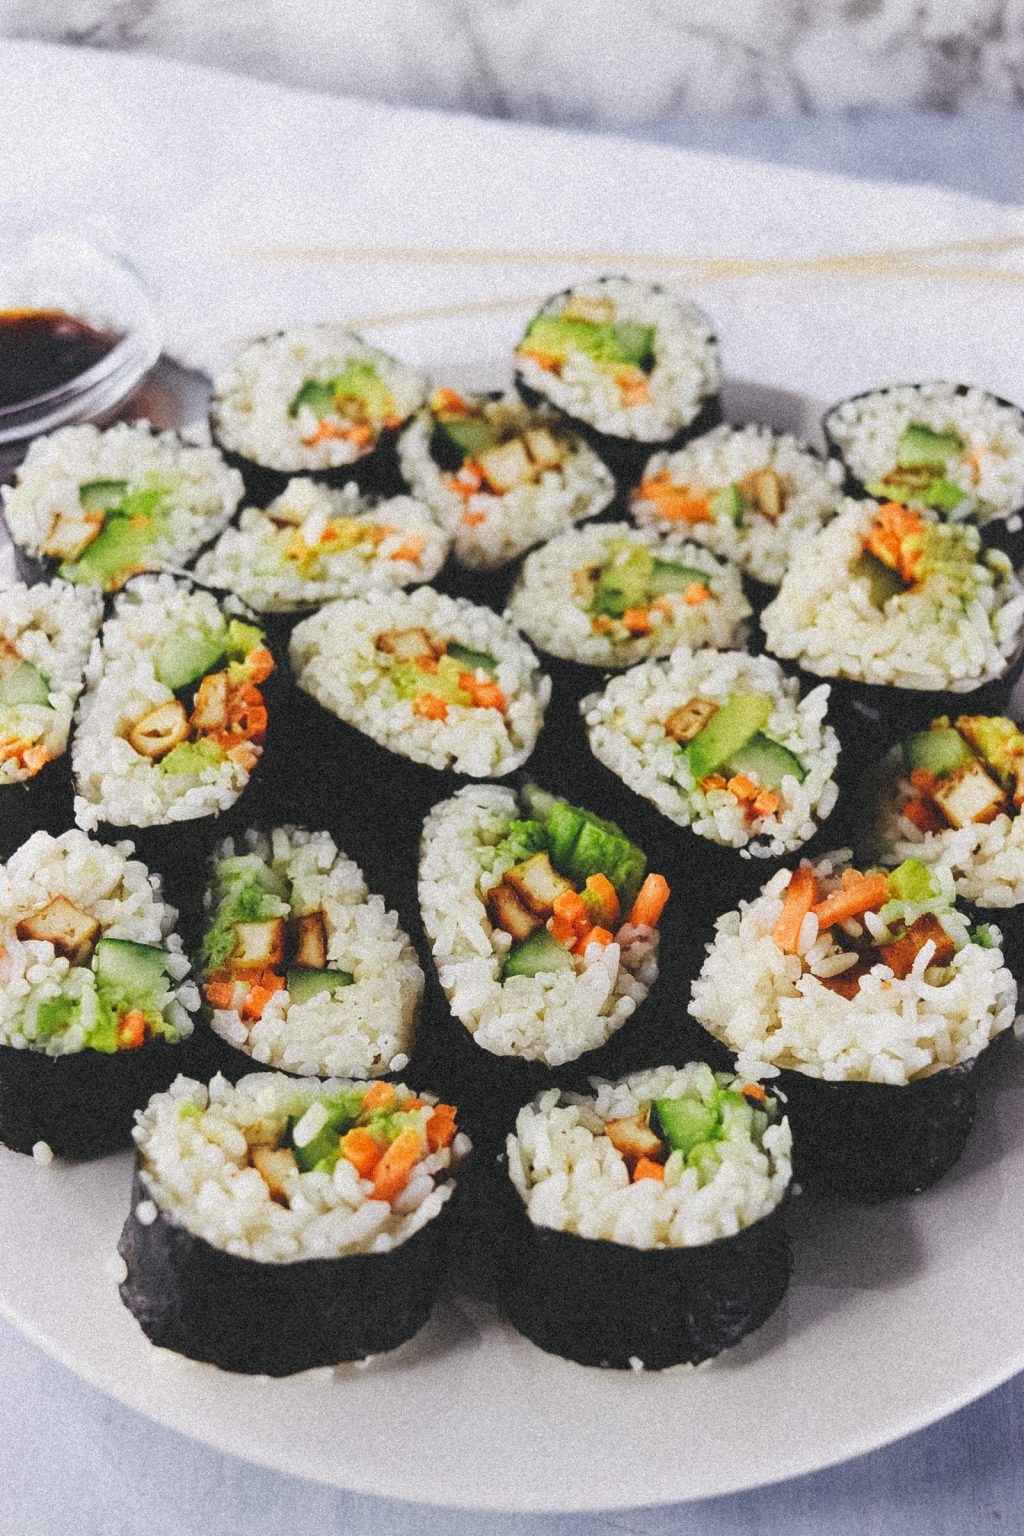 Vegan Tofu Sushi Recipe  4017 1024x1536 - Vegan Sushi Recipe - Super Quick, Easy And Delicious